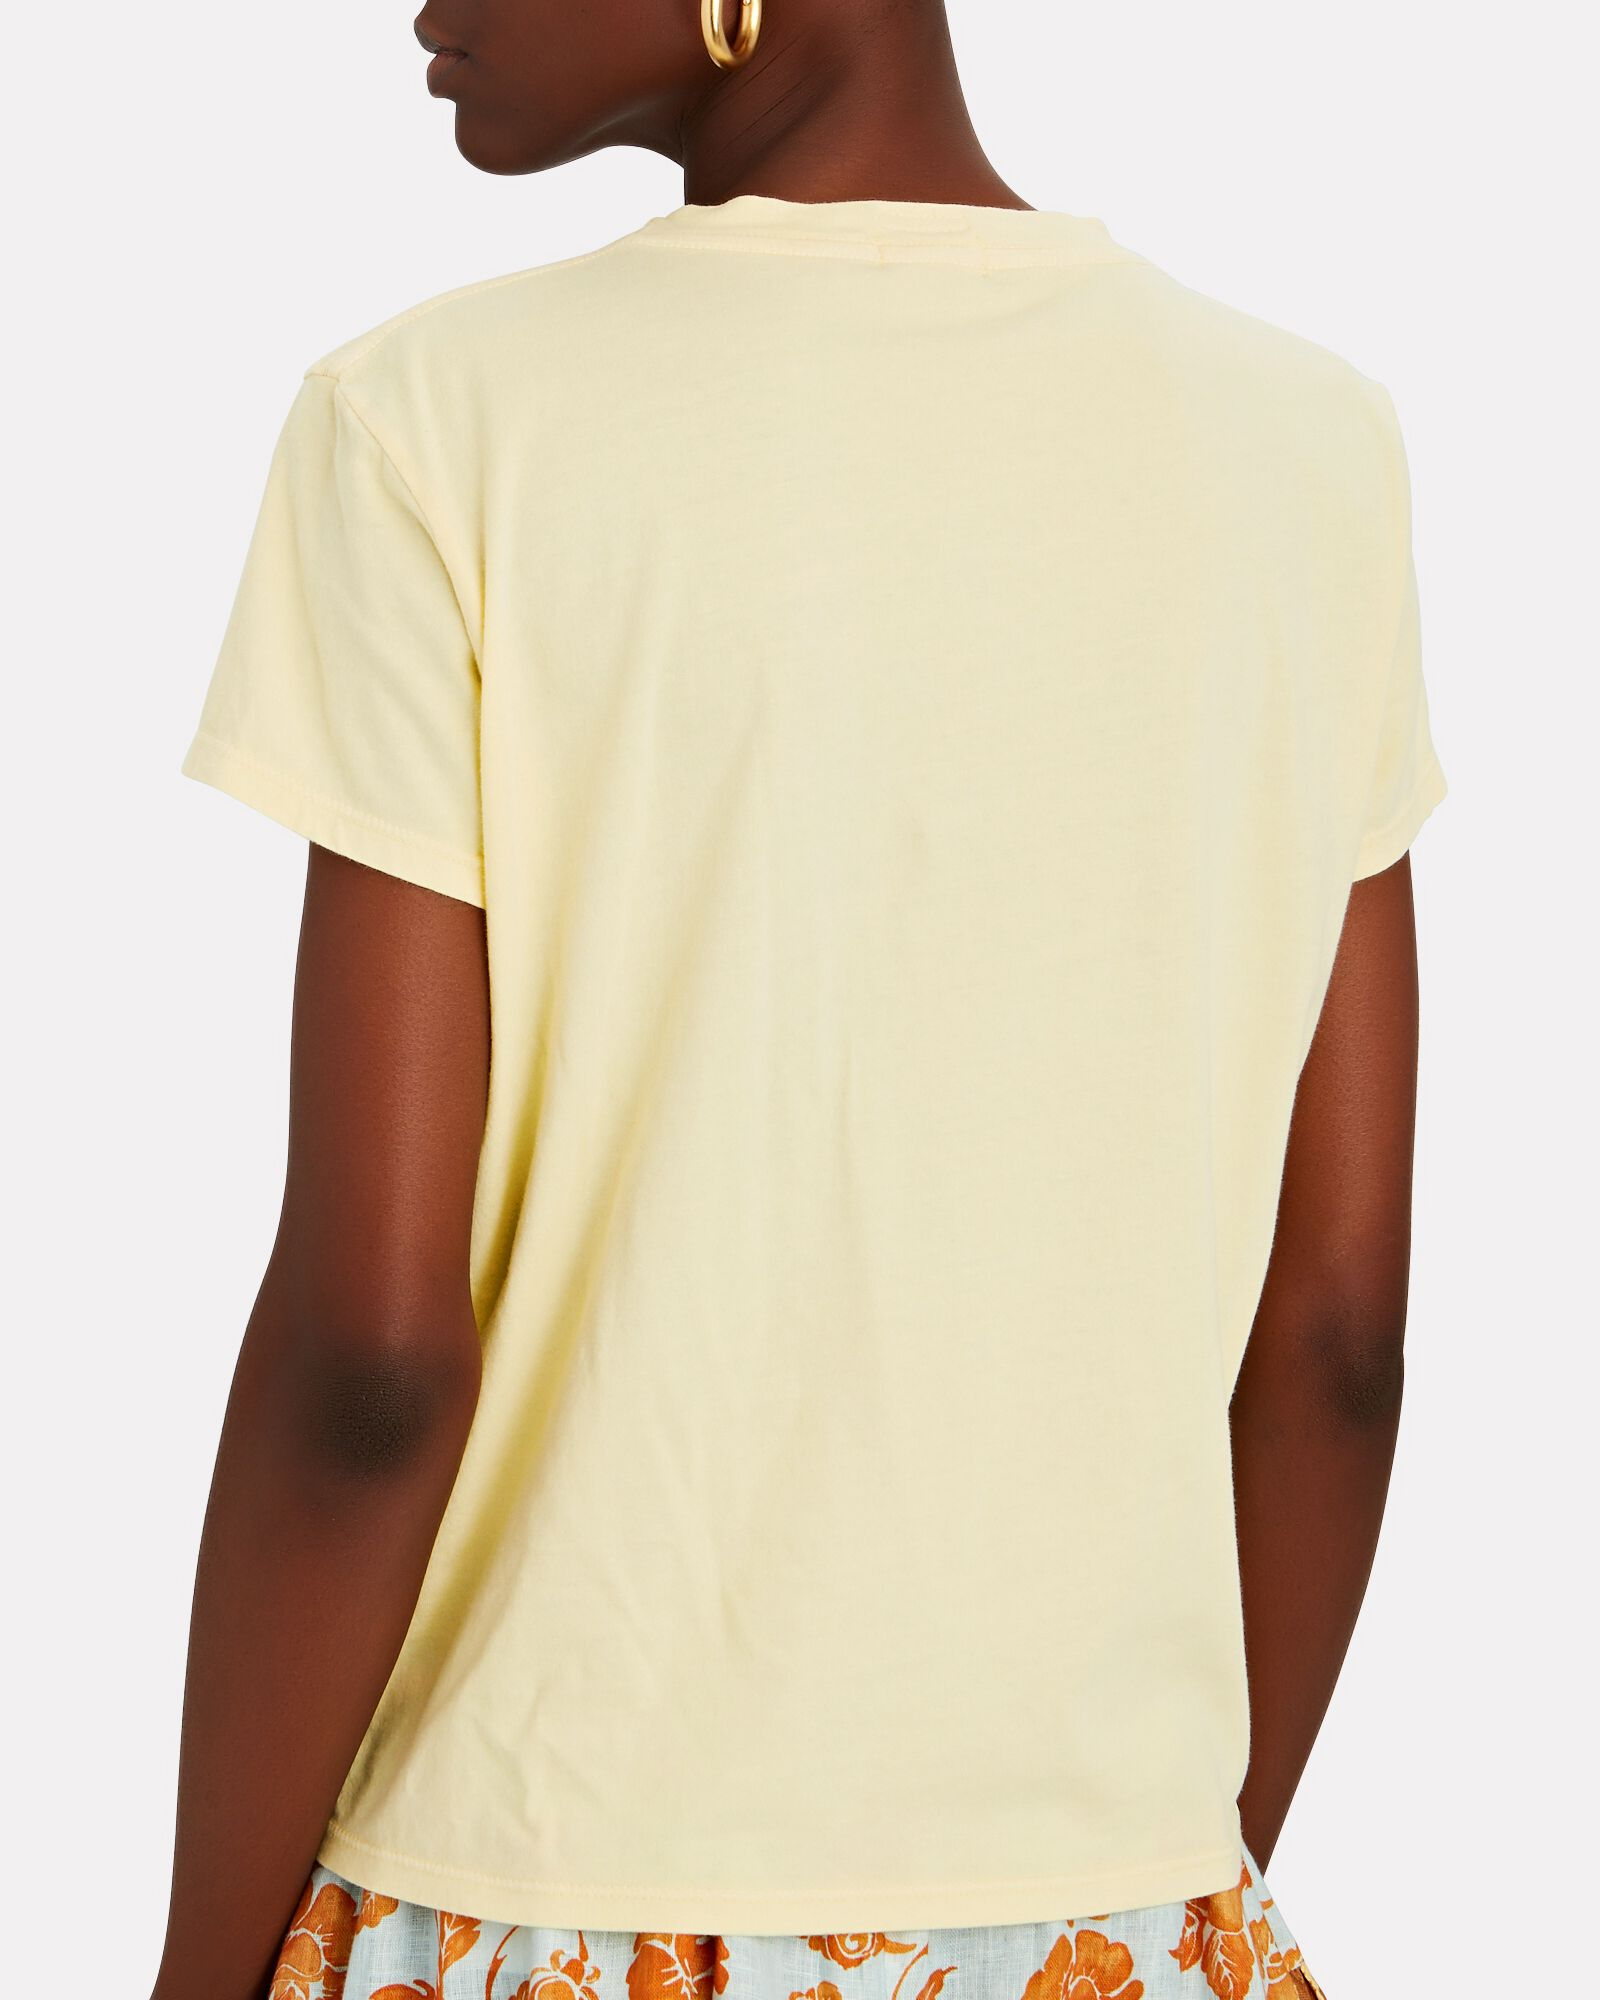 The Boxy Goodie Goodie T-Shirt, YELLOW, hi-res